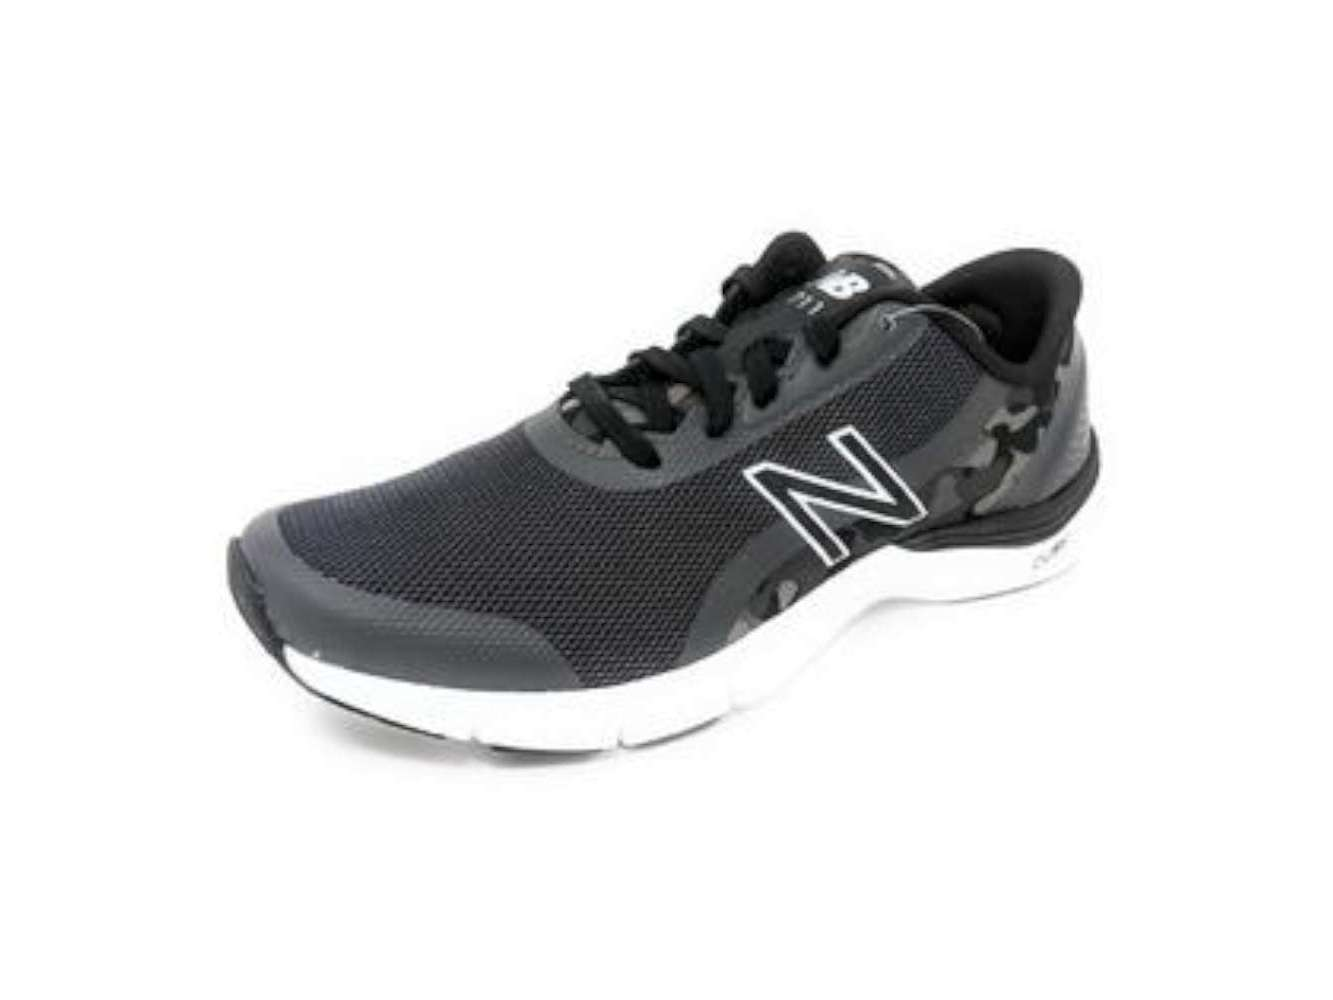 New Sneaker, Balance Damenschuhe Wx711cg3 Niedrig Top Lace Up Running Sneaker, New , e3c01f